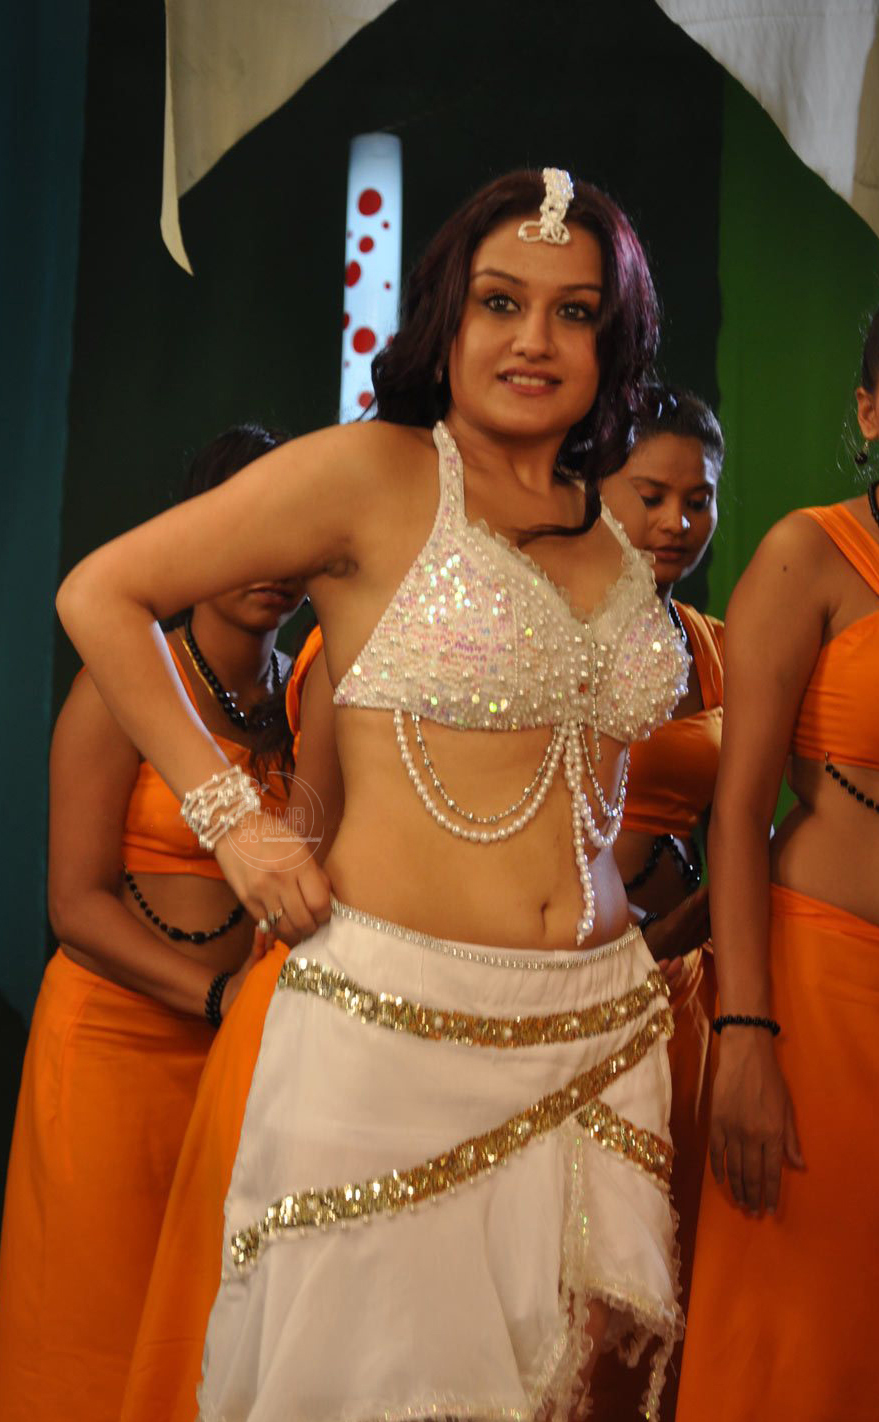 sonia-agarwal-hot-navel-photos-